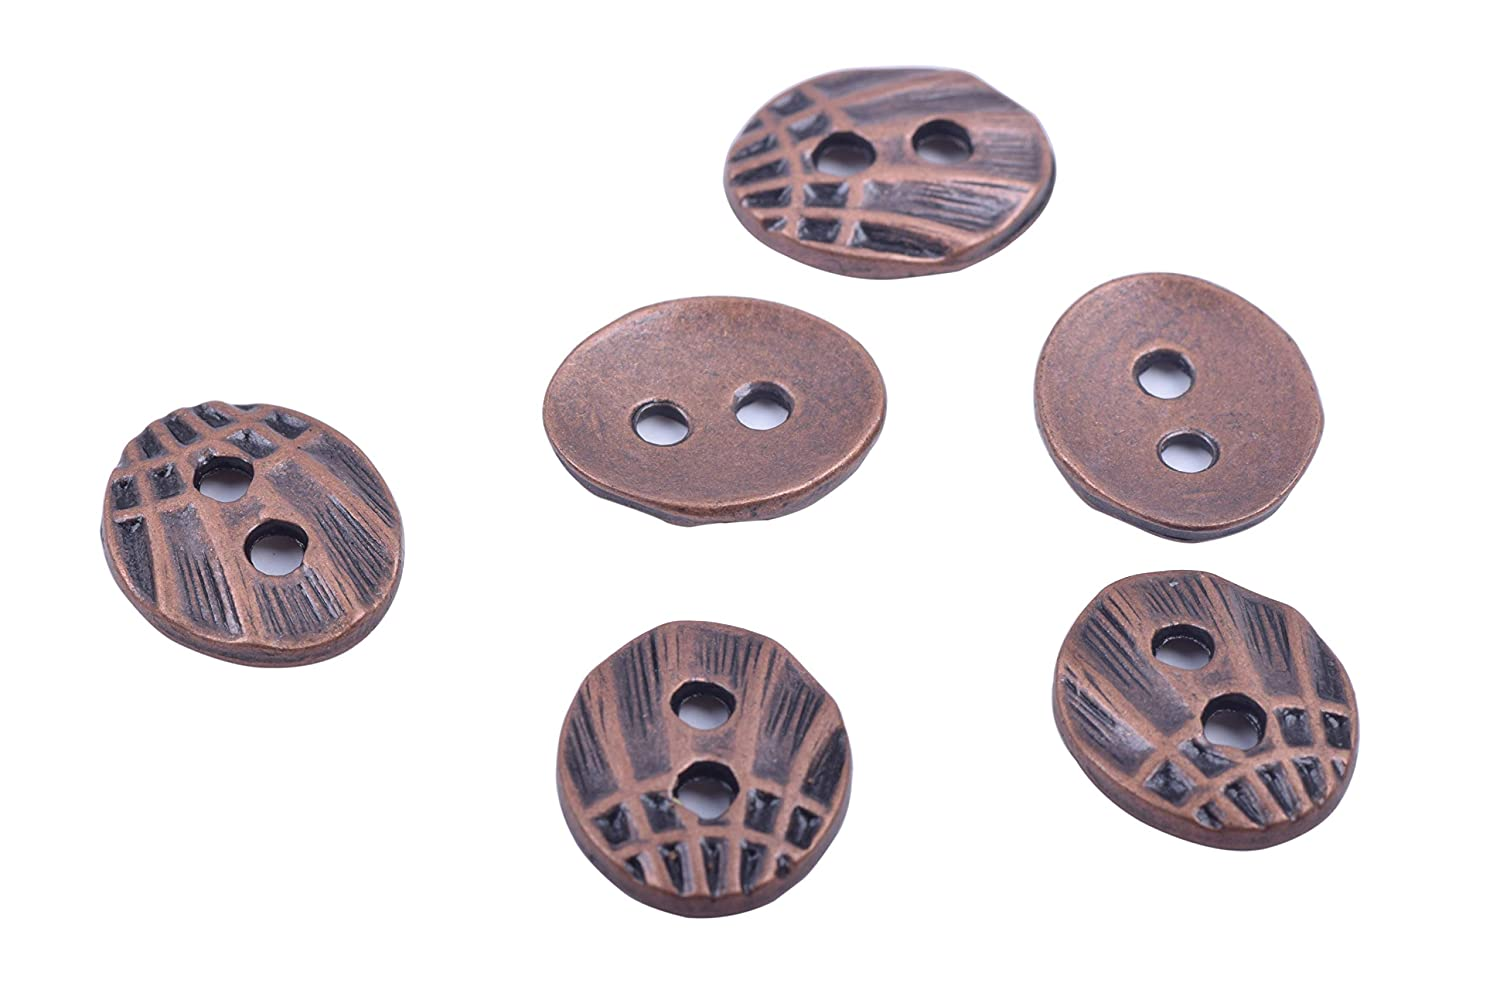 KONMAY 50pcs Buttons with Two Hole for Wrap Bracelets Jewelry Making Fits 1.5mm and 2.0mm Golden